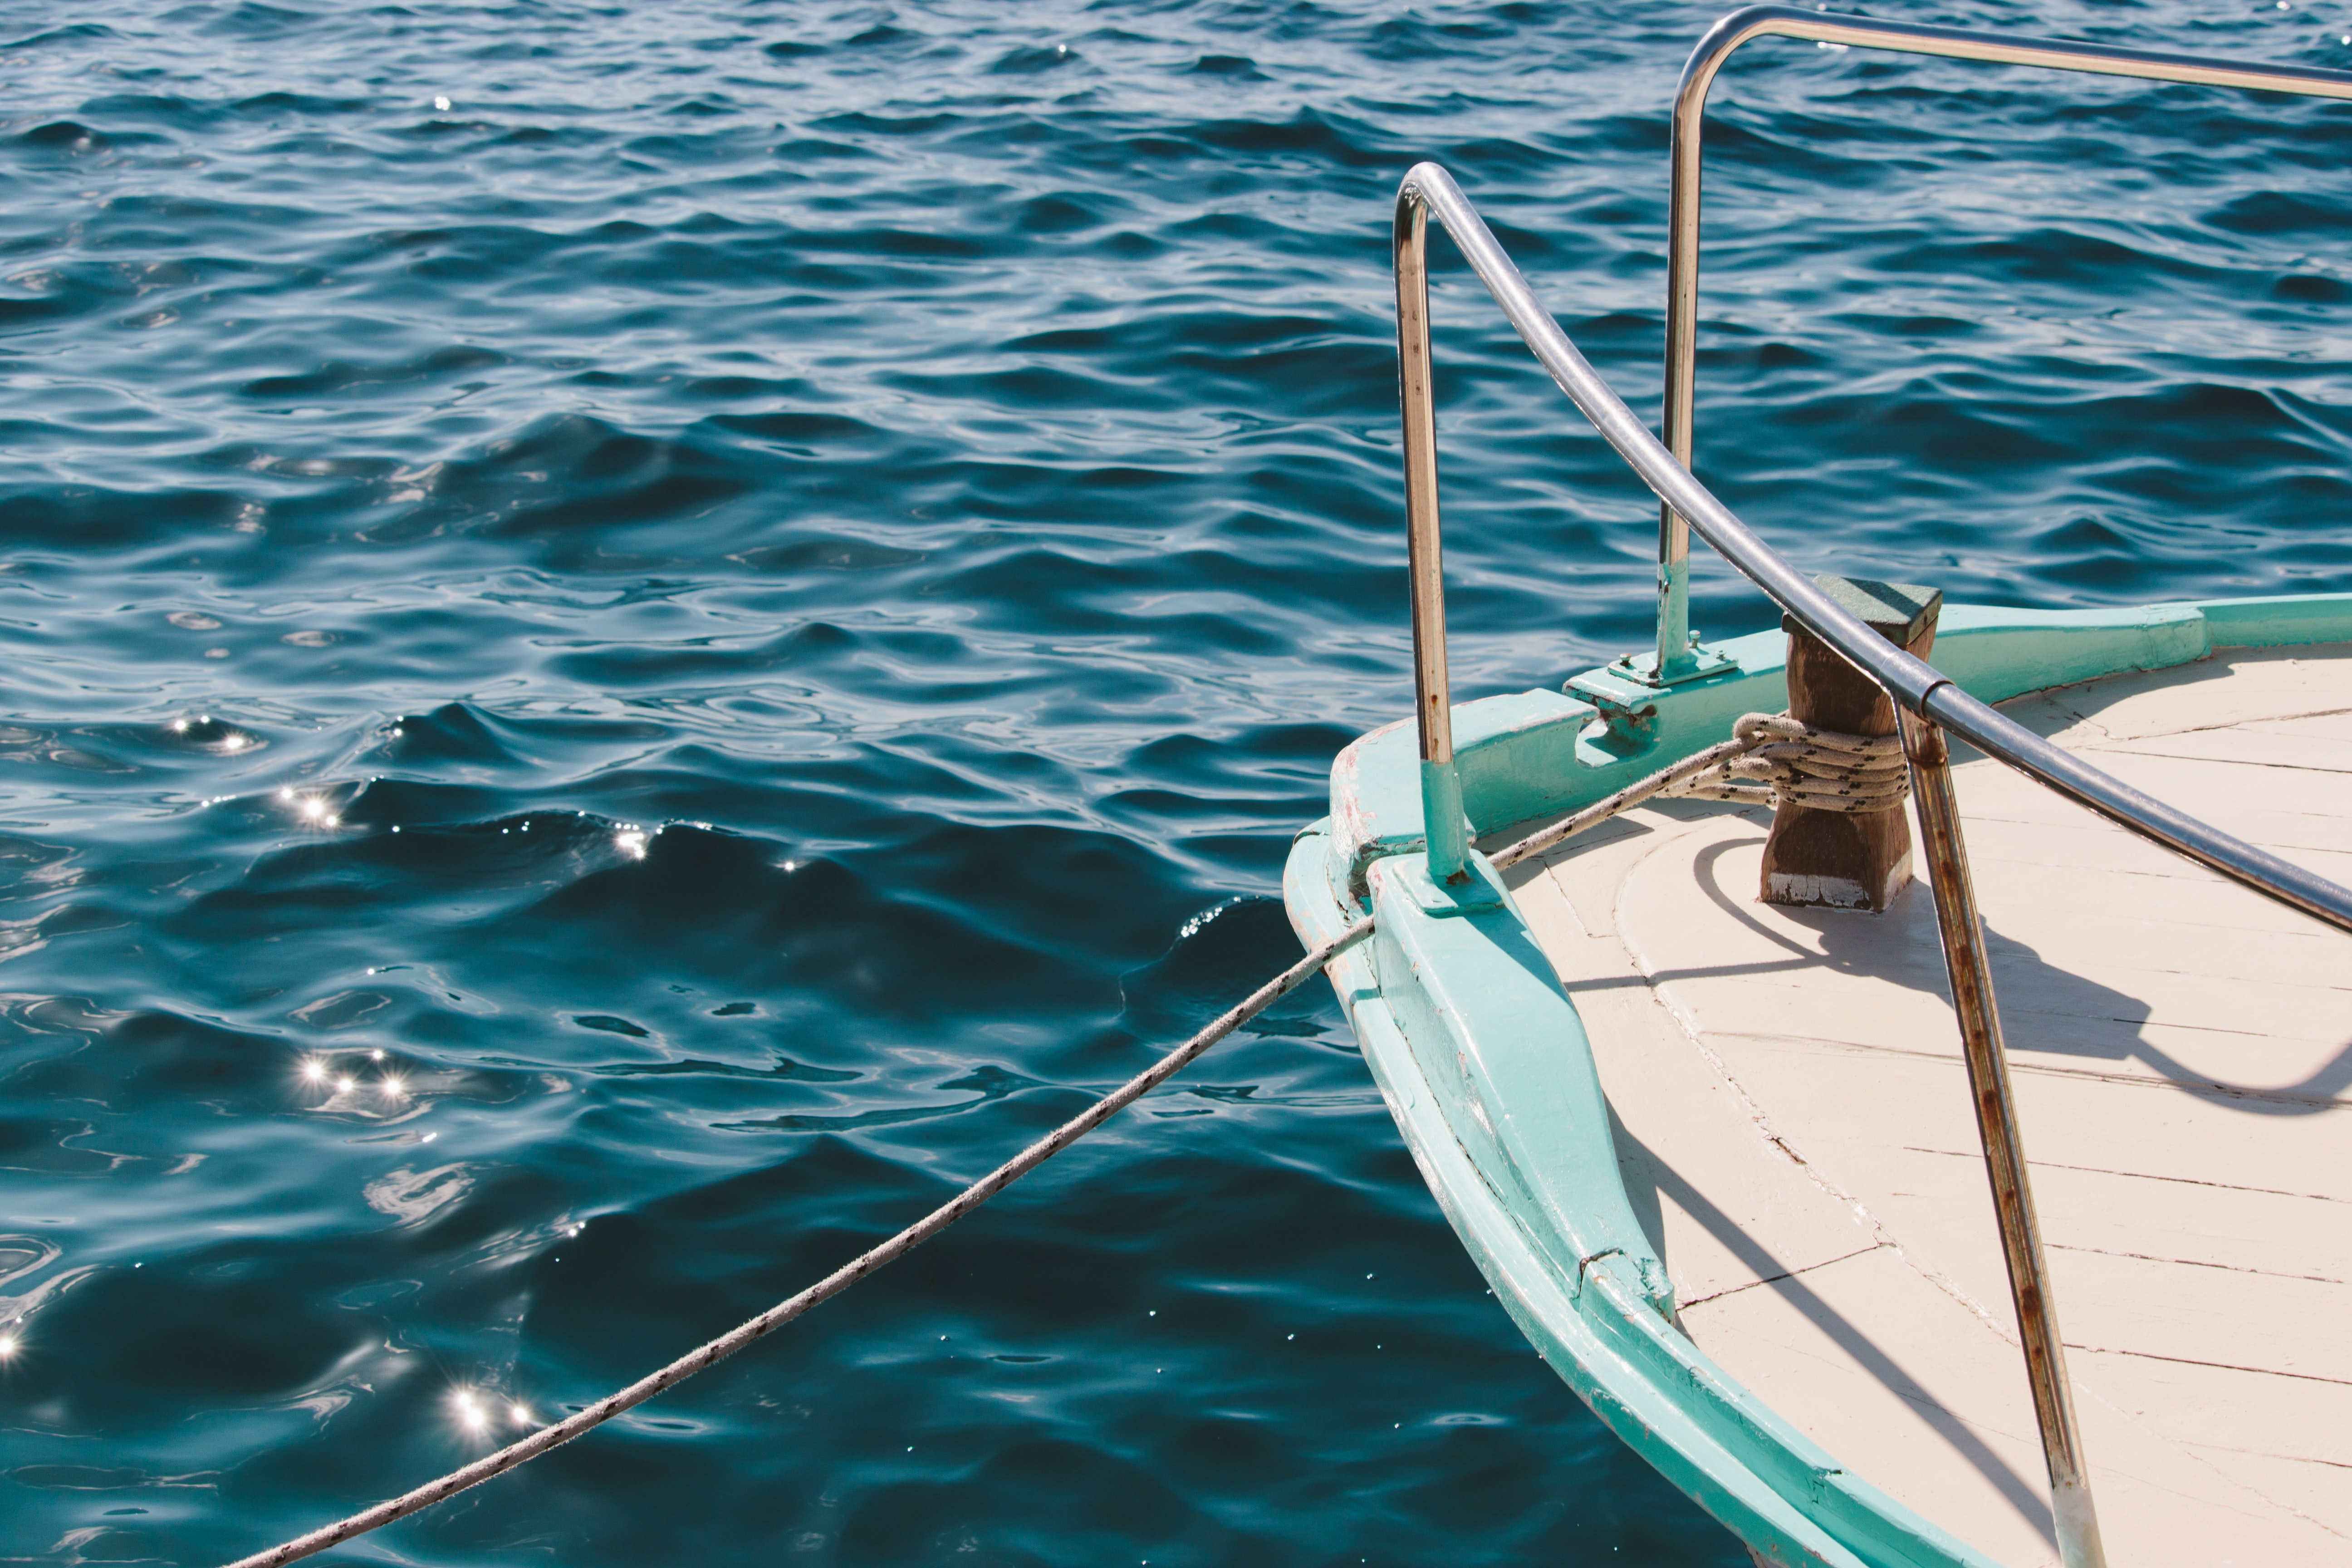 shallow focus photography of white boat